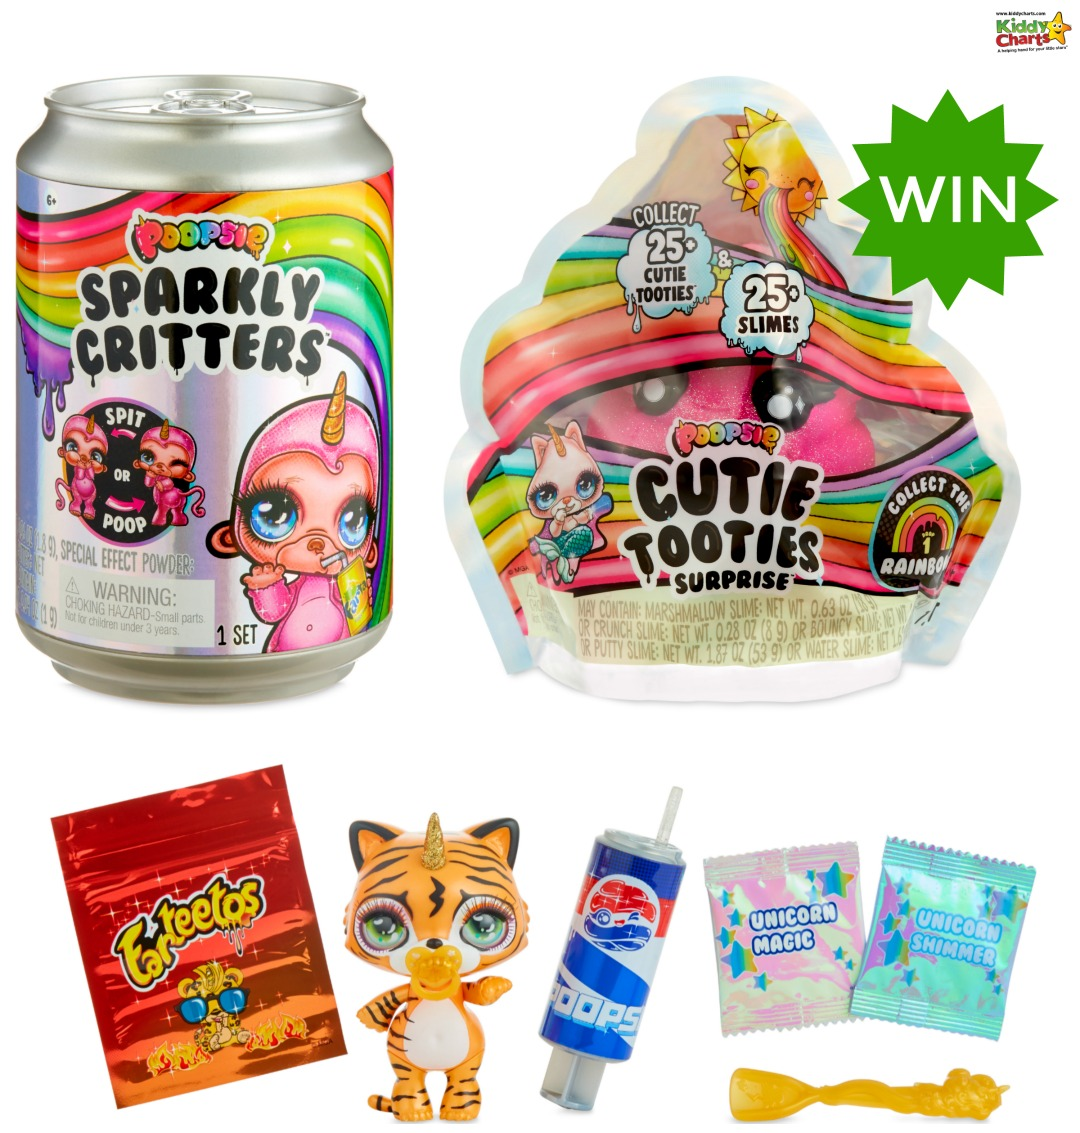 We love Poopsie slime - and we bet you will too with these Sparkly Critters and Cutie Tooties, as well as Poopsie Poo to win! #giveaways #win #poopsie #slime #slimefun